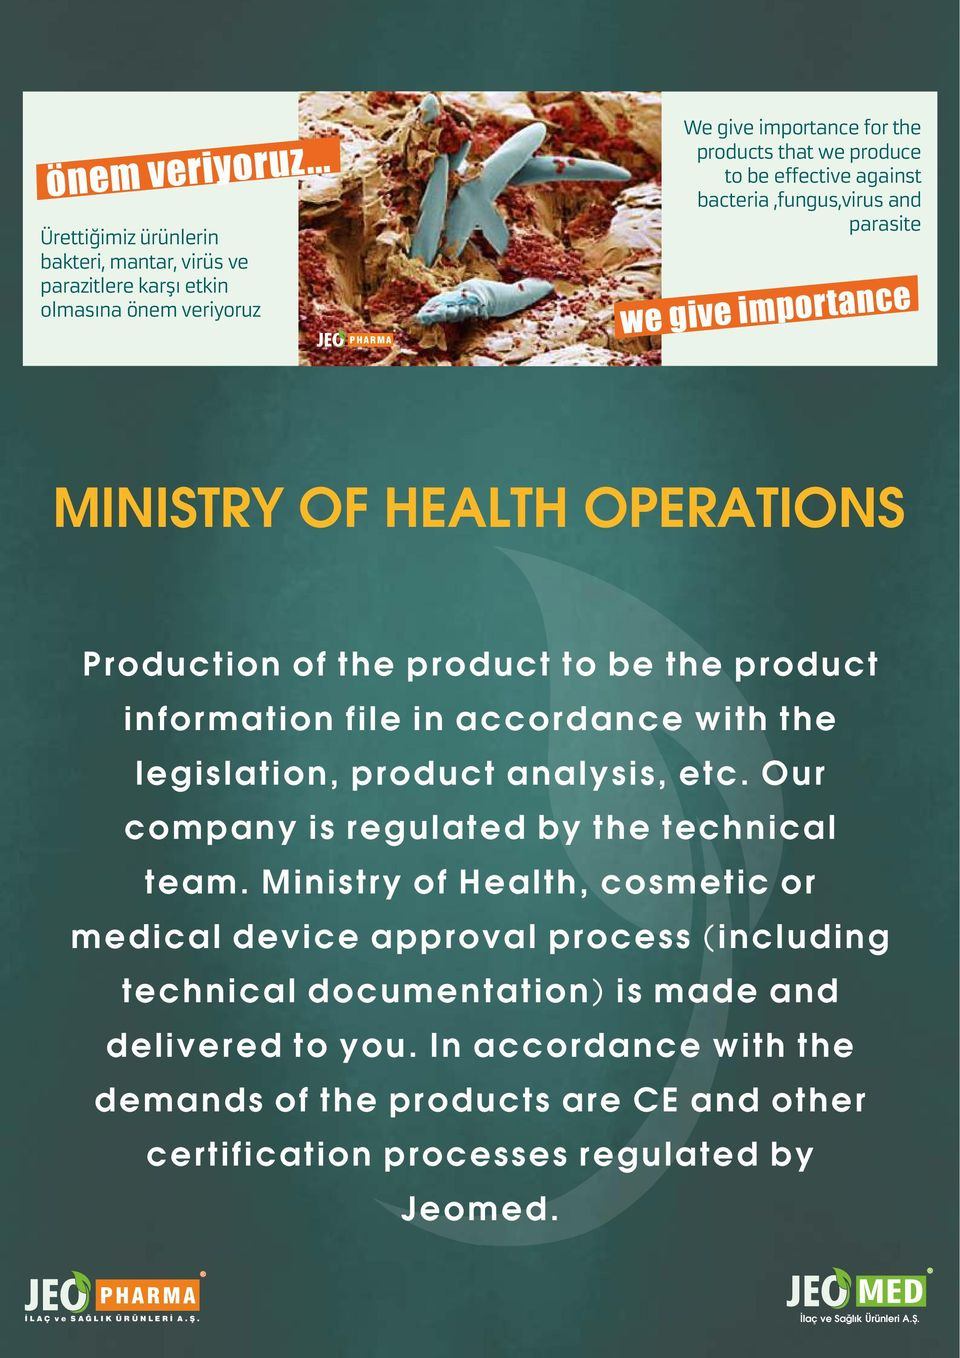 against bacteria,fungus,virus and parasite we give importance MINISTRY OF HEALTH OPERATIONS Production of the product to be the product information file in accordance